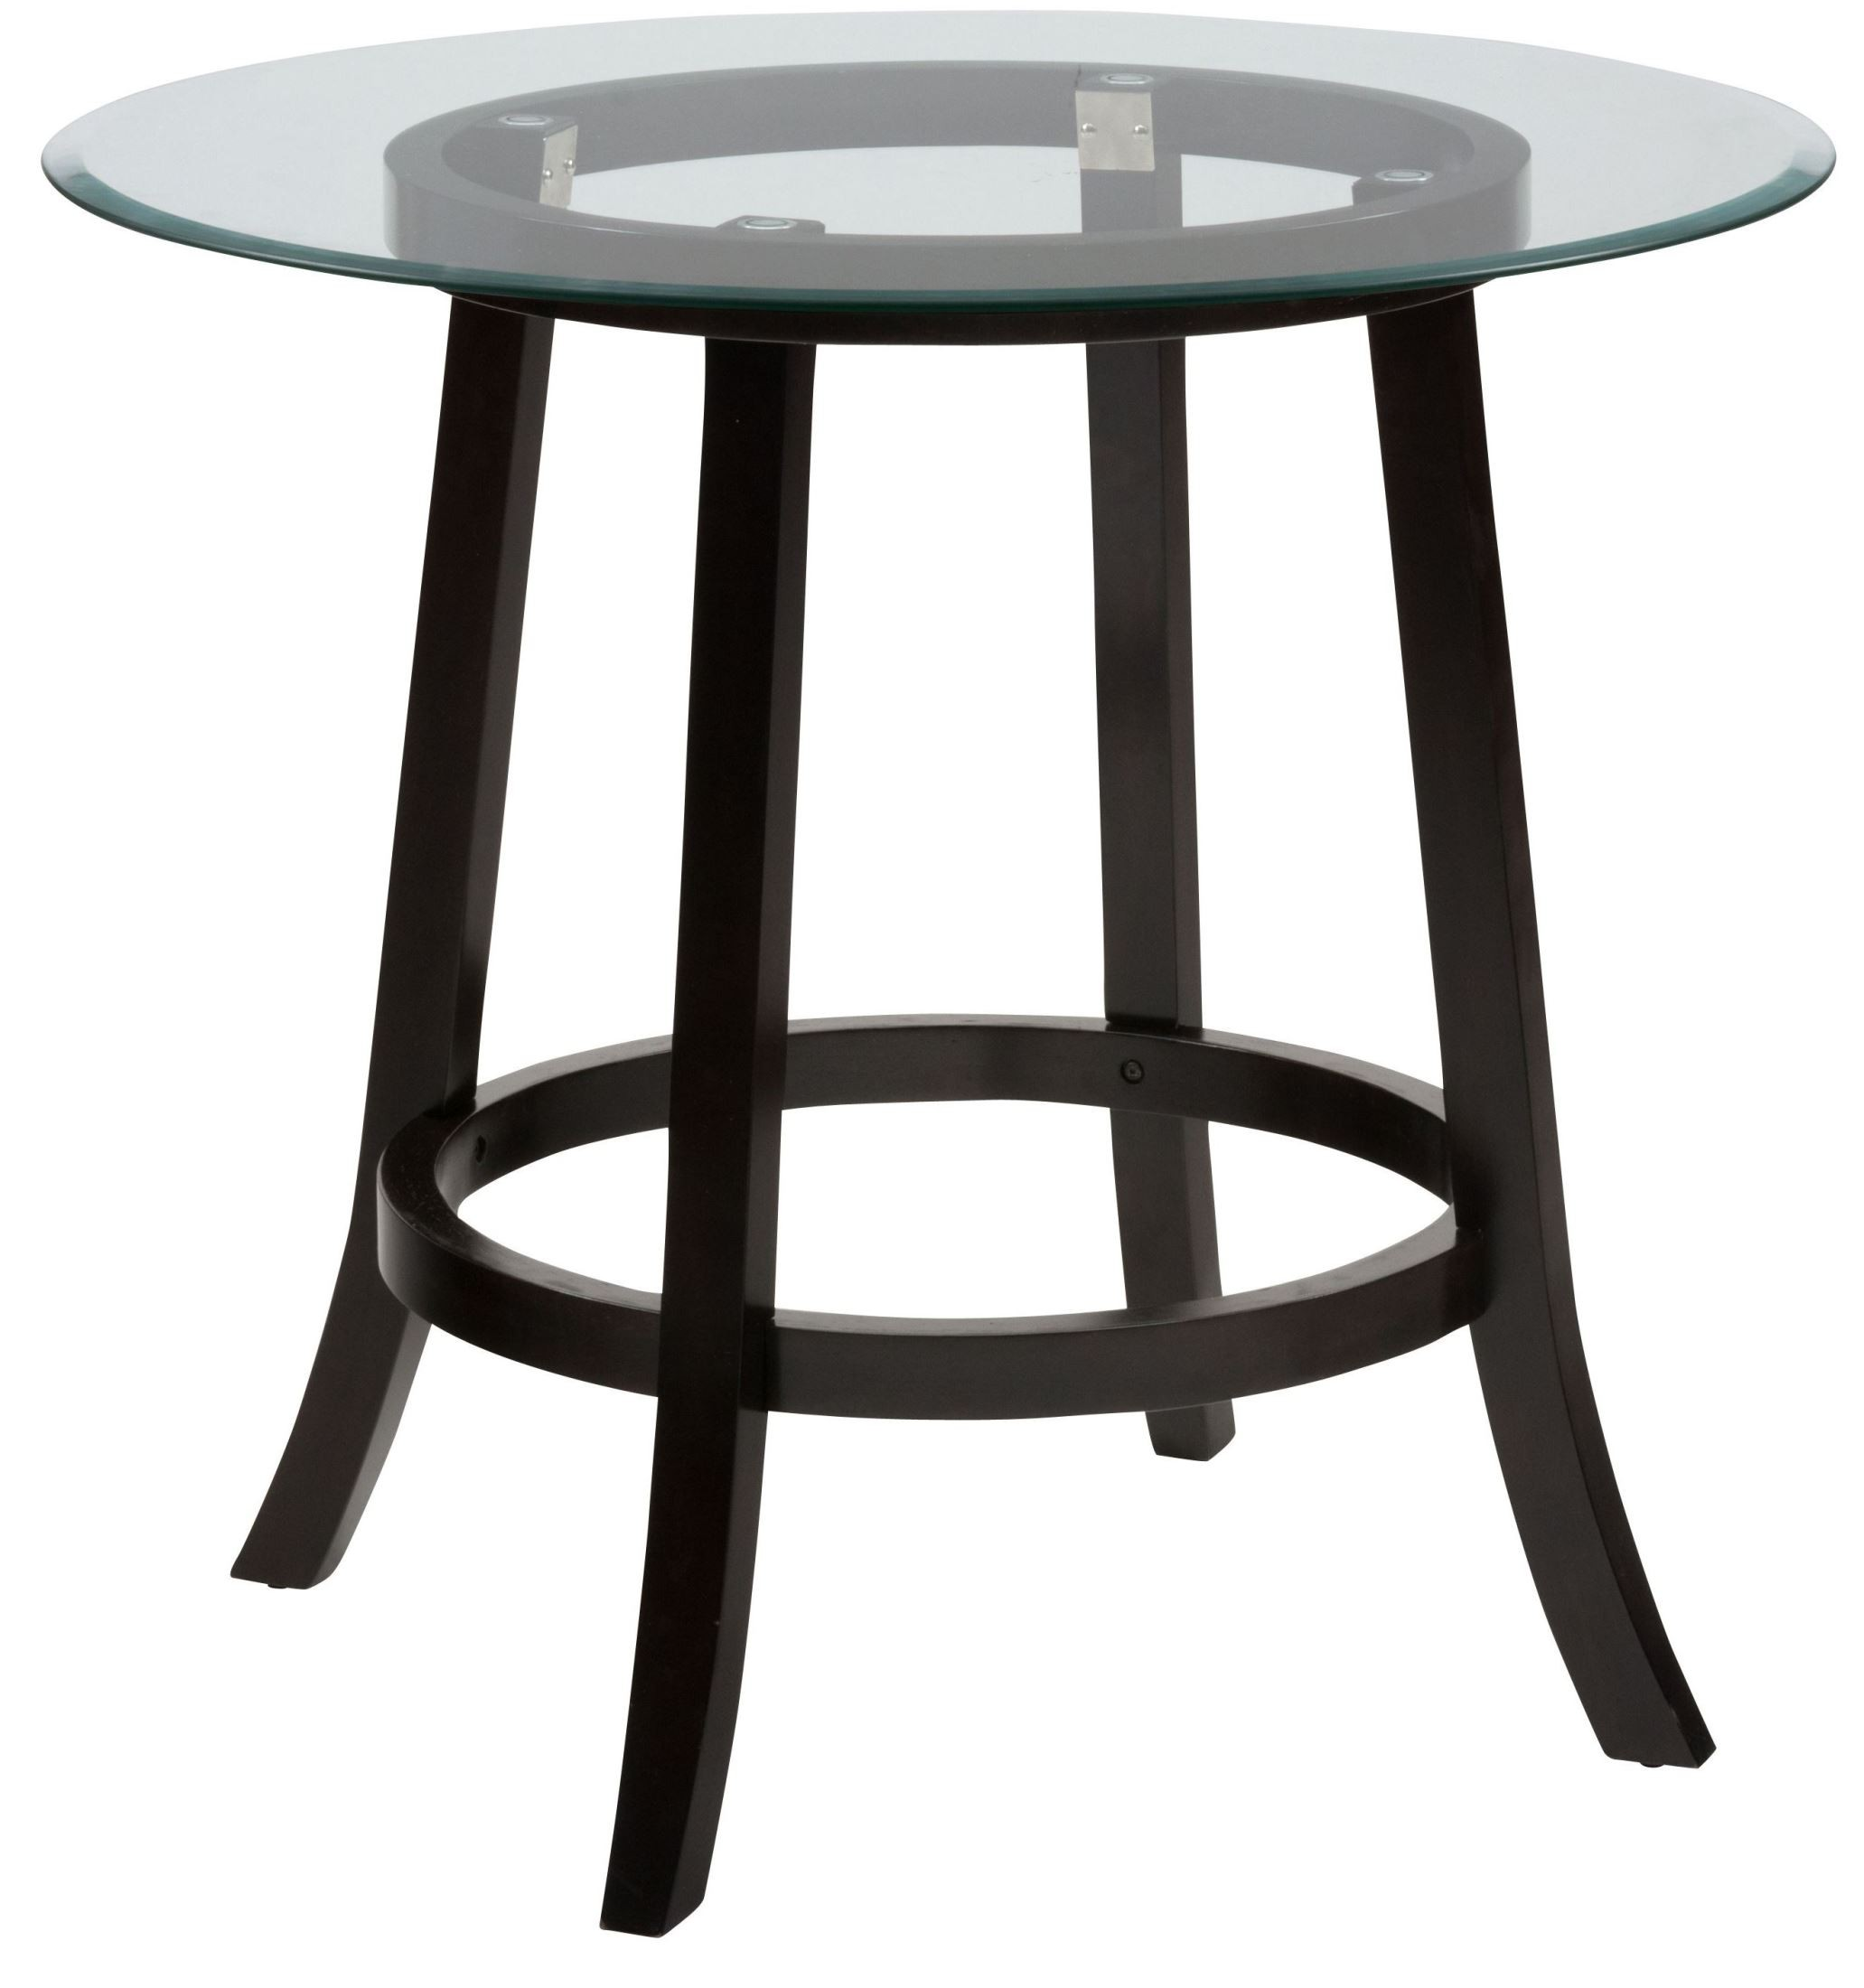 Aaron Pub 42quot Glass Top Round Counter Height Dining Table  : 815 42bangle from colemanfurniture.com size 2063 x 2200 jpeg 223kB